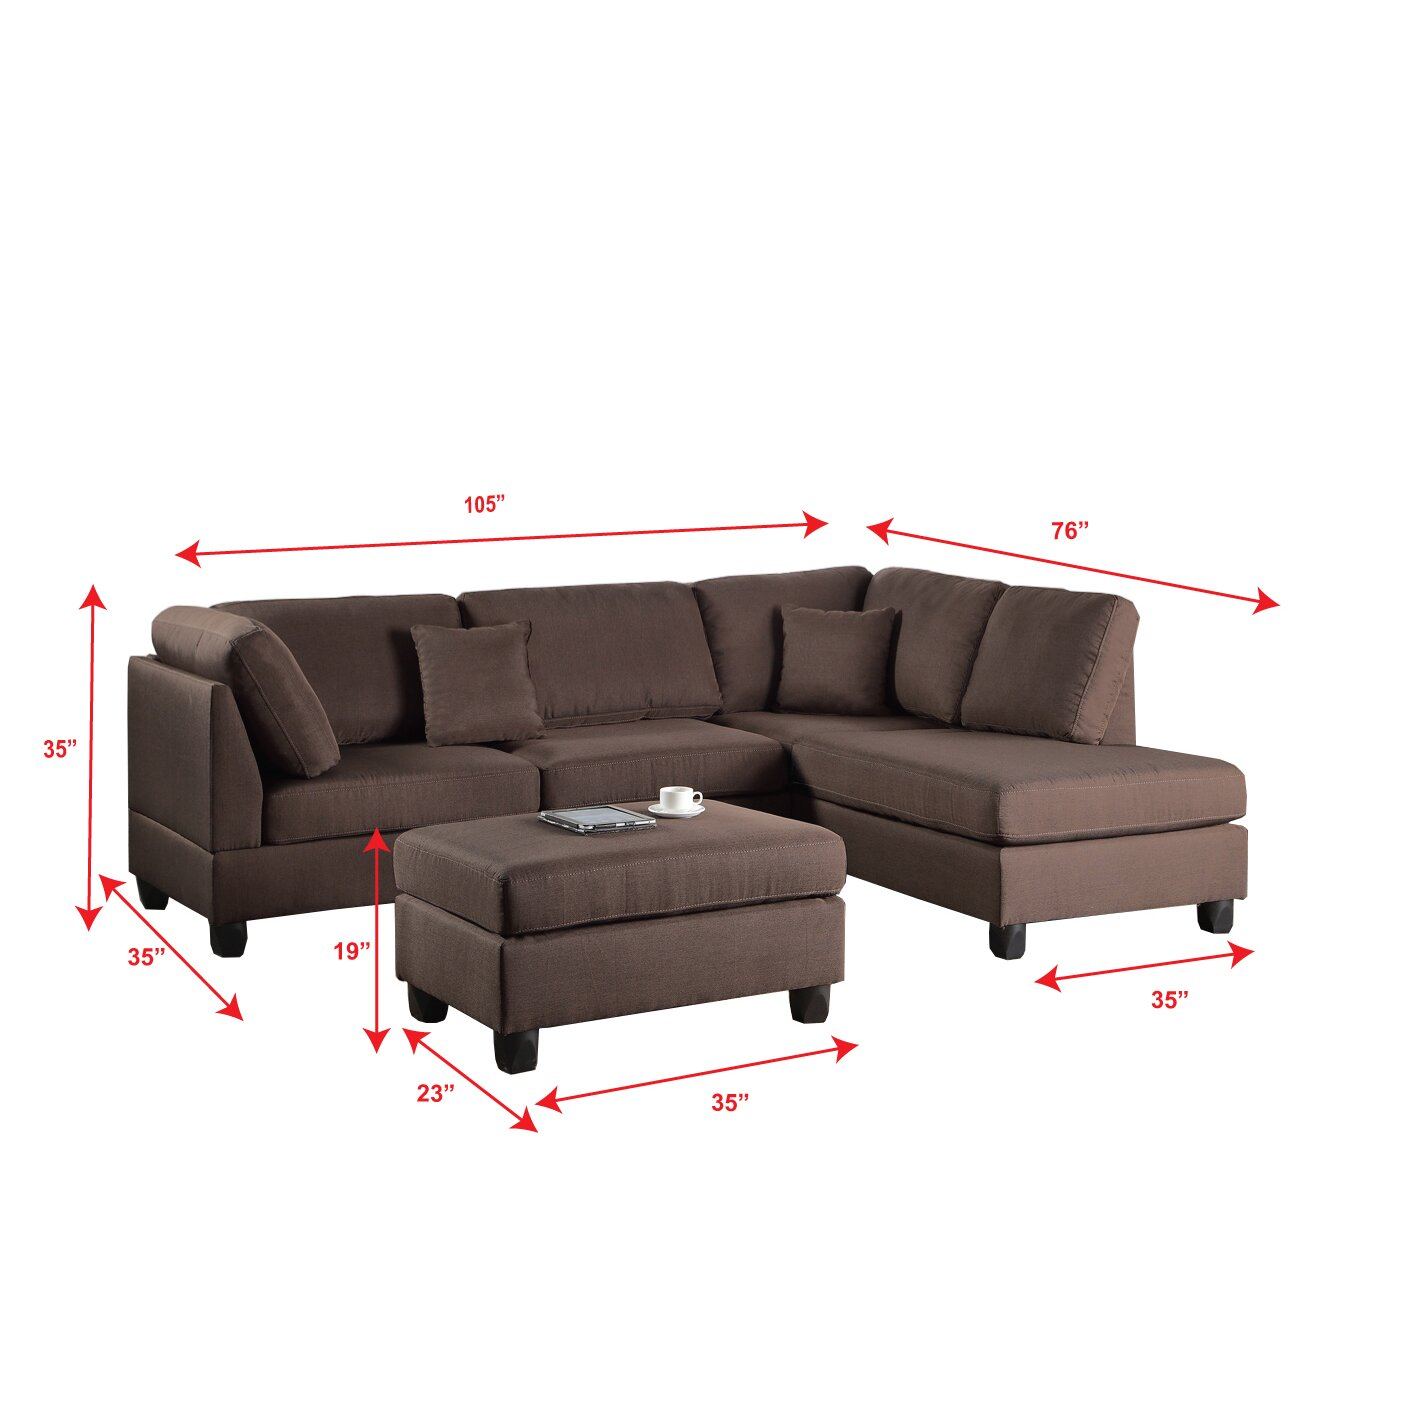 Poundex bobkona dervon reversible chaise sectional for Chaise and ottoman